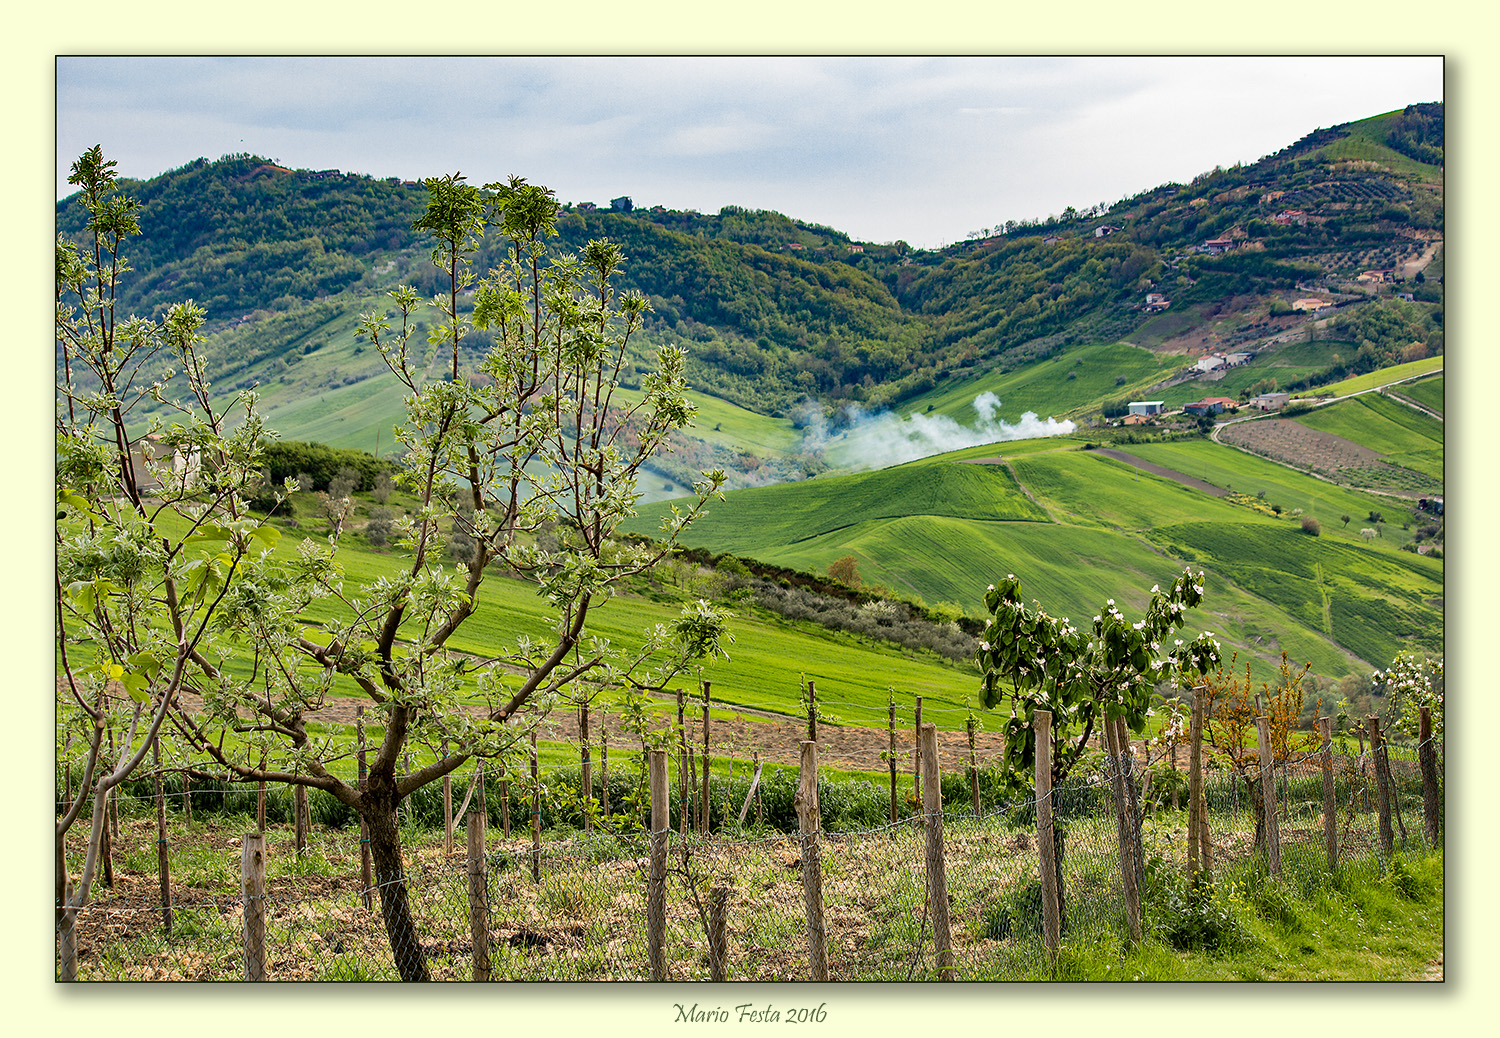 The green hills of Irpinia...